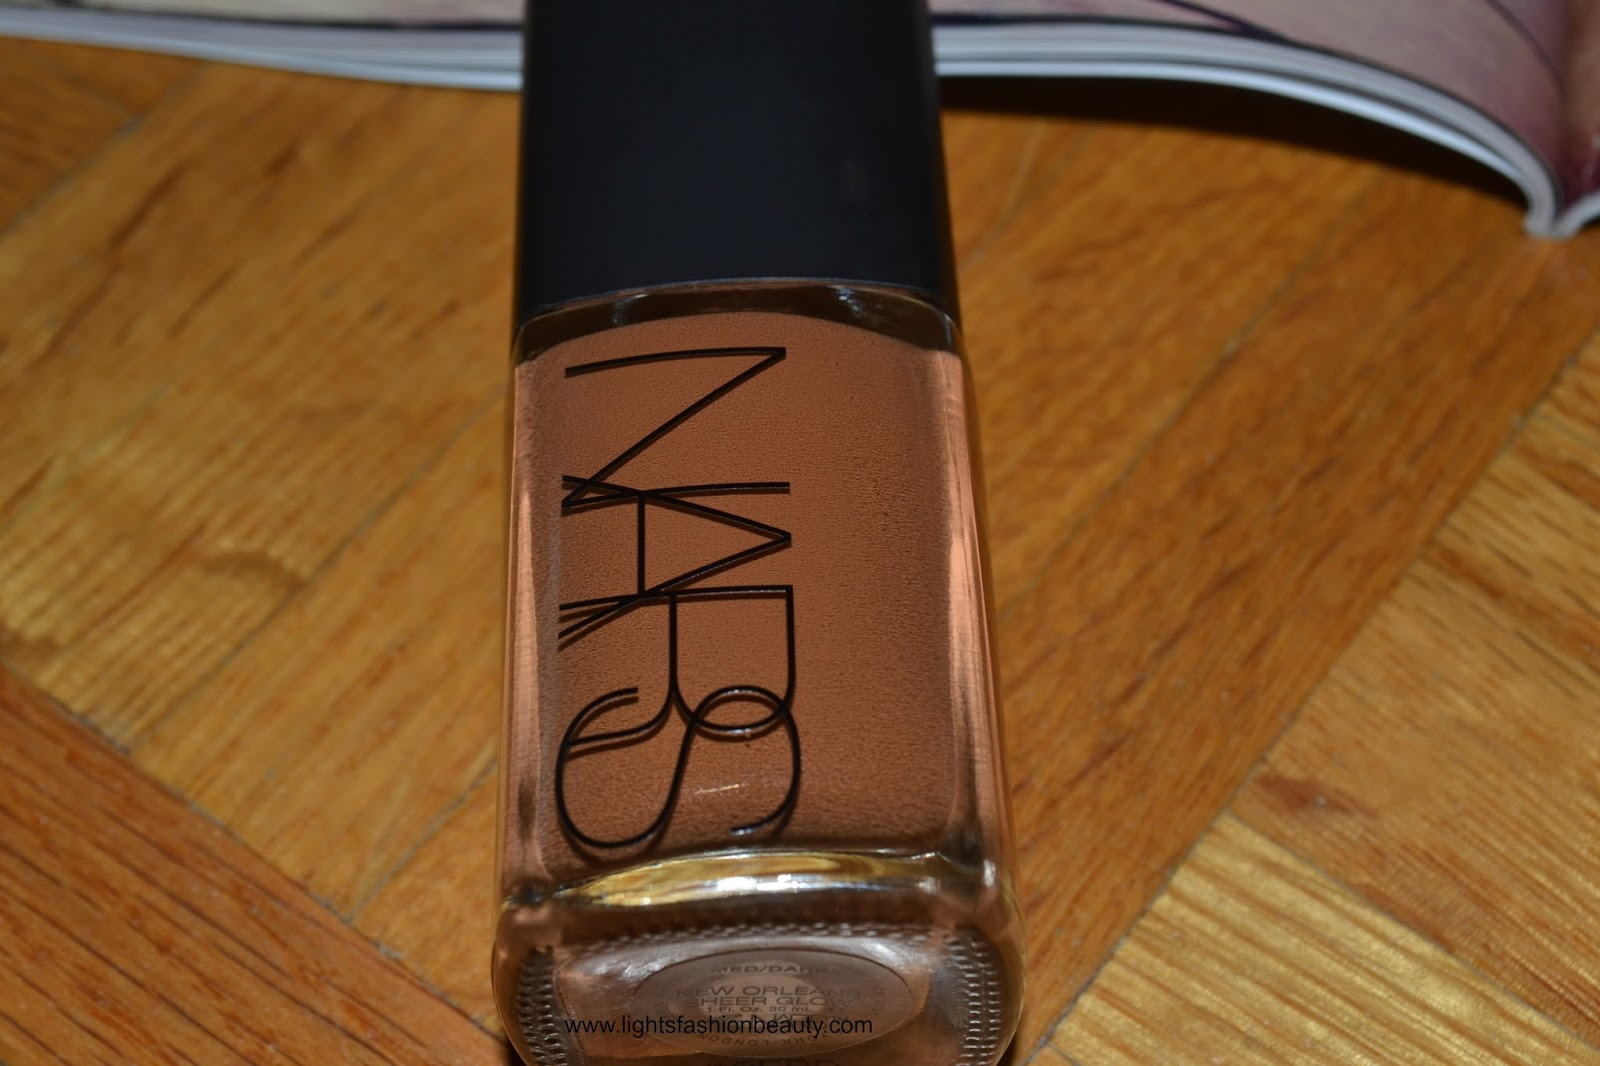 Foundation Series : NARS Sheer Glow Foundation, nars sheer glow foundation, foundation for dark skin, best foundation for oily skin, foundation for oily skin, montreal beauty blogger, lightsfashionbeauty